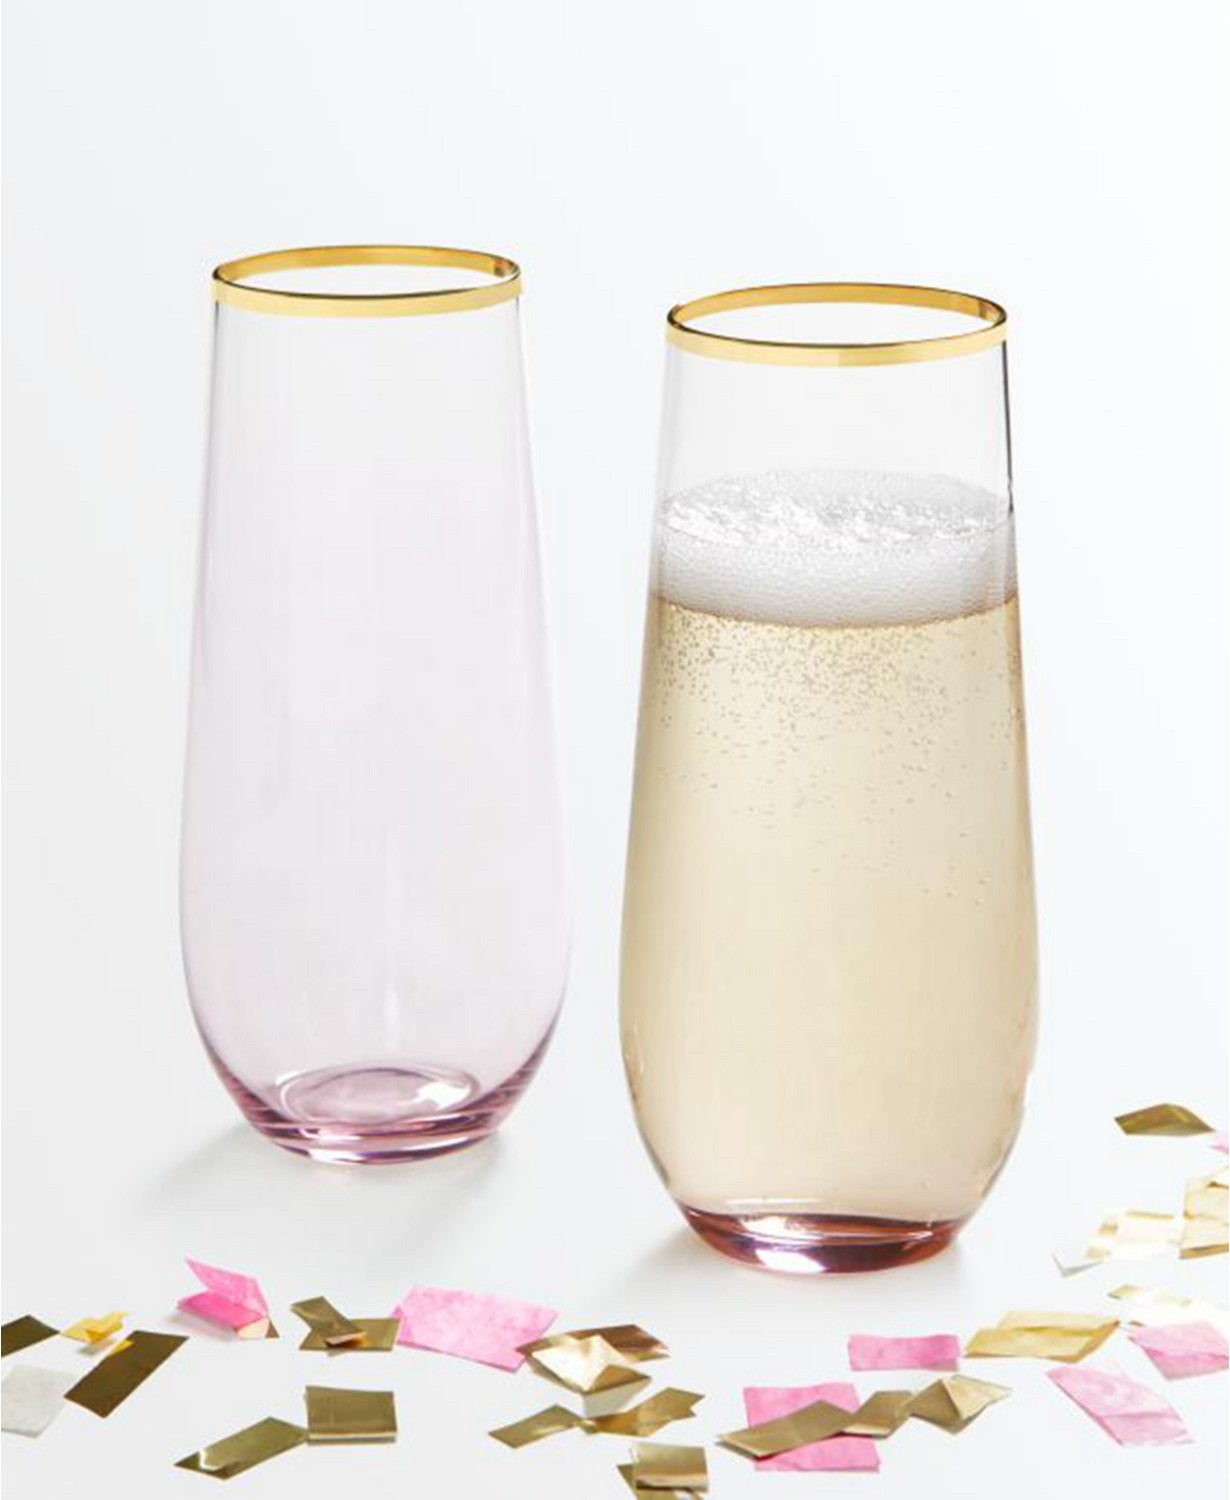 Martha Stewart Collection Stemless Wine Glasses with Gold Rim